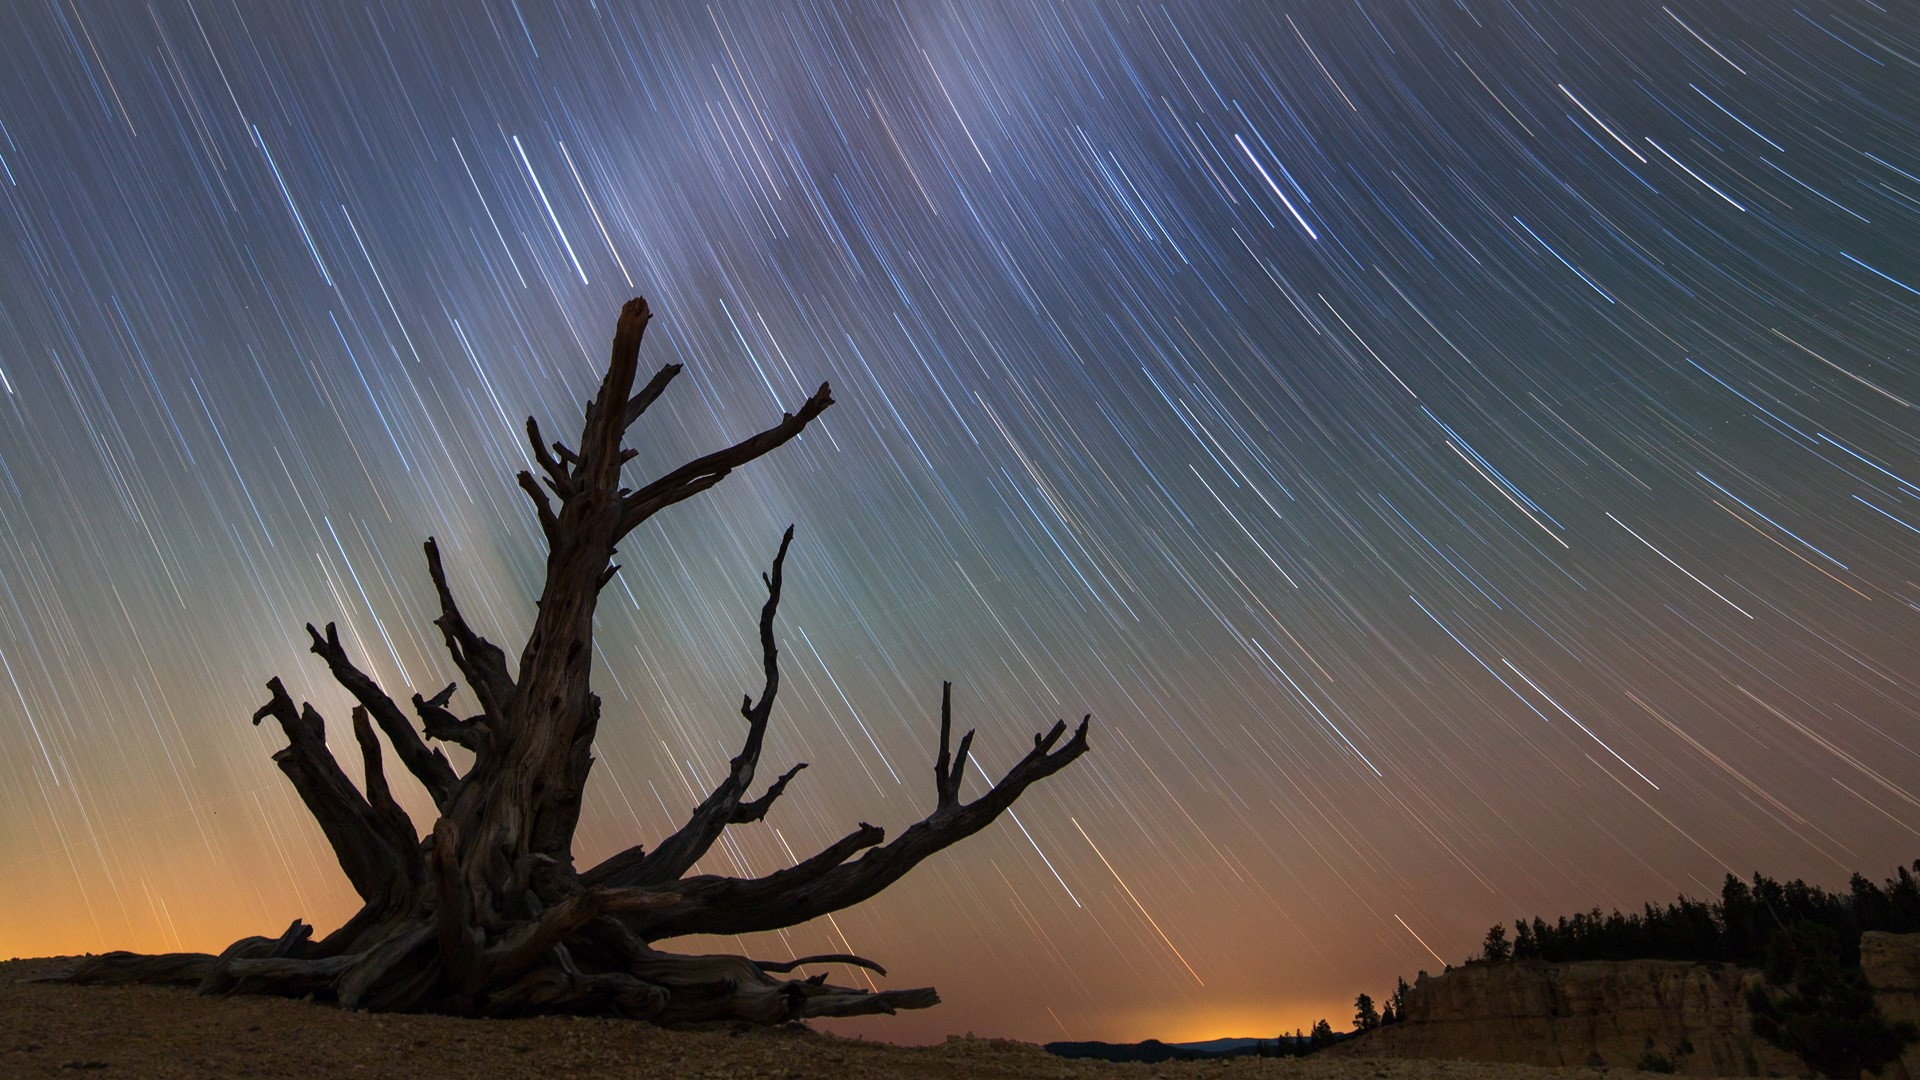 Milky Way star trails behind bristlecone pine, Bryce Canyon National